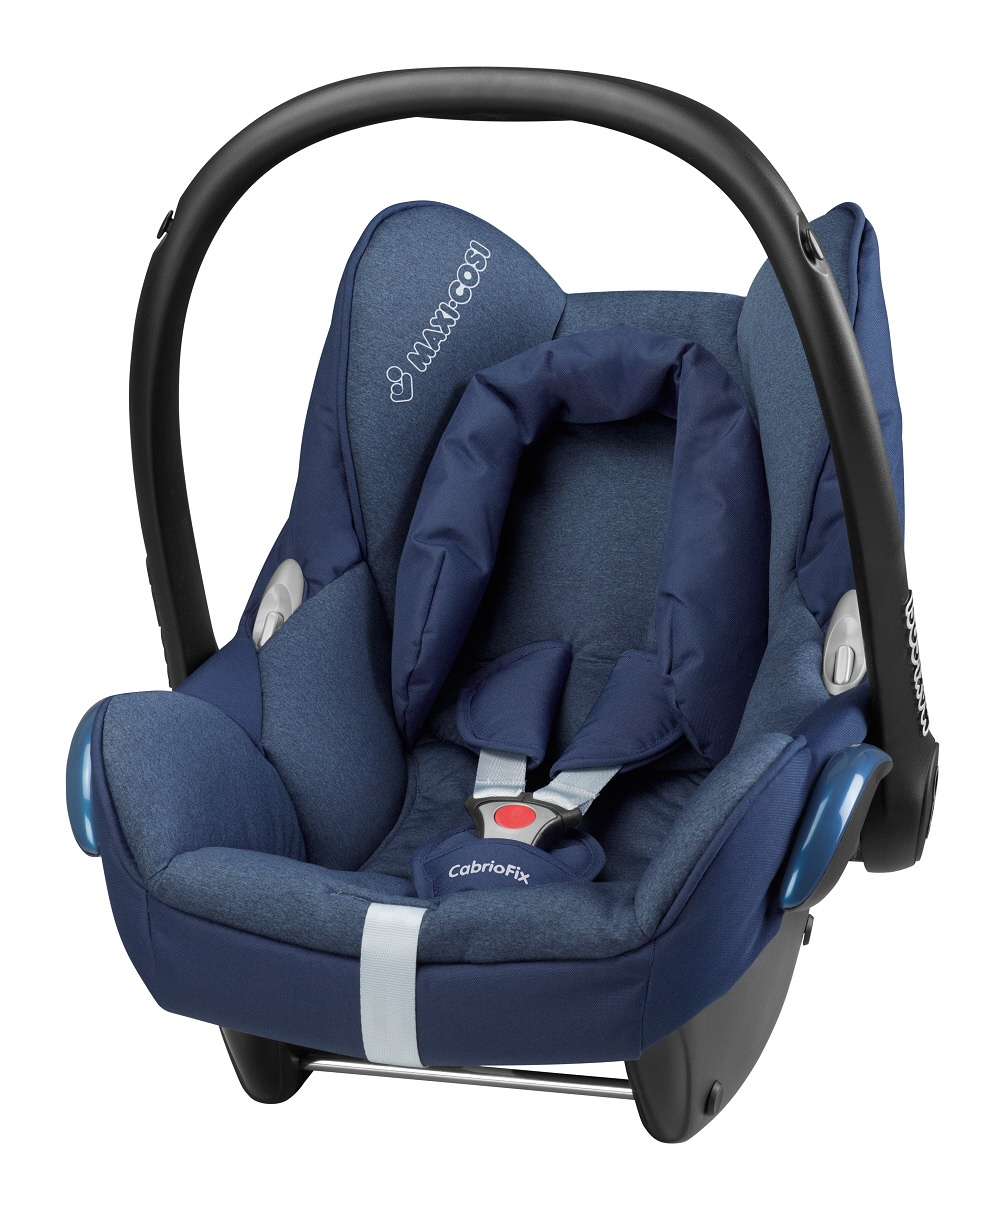 maxi cosi infant car seat cabriofix 2015 dress blue buy. Black Bedroom Furniture Sets. Home Design Ideas